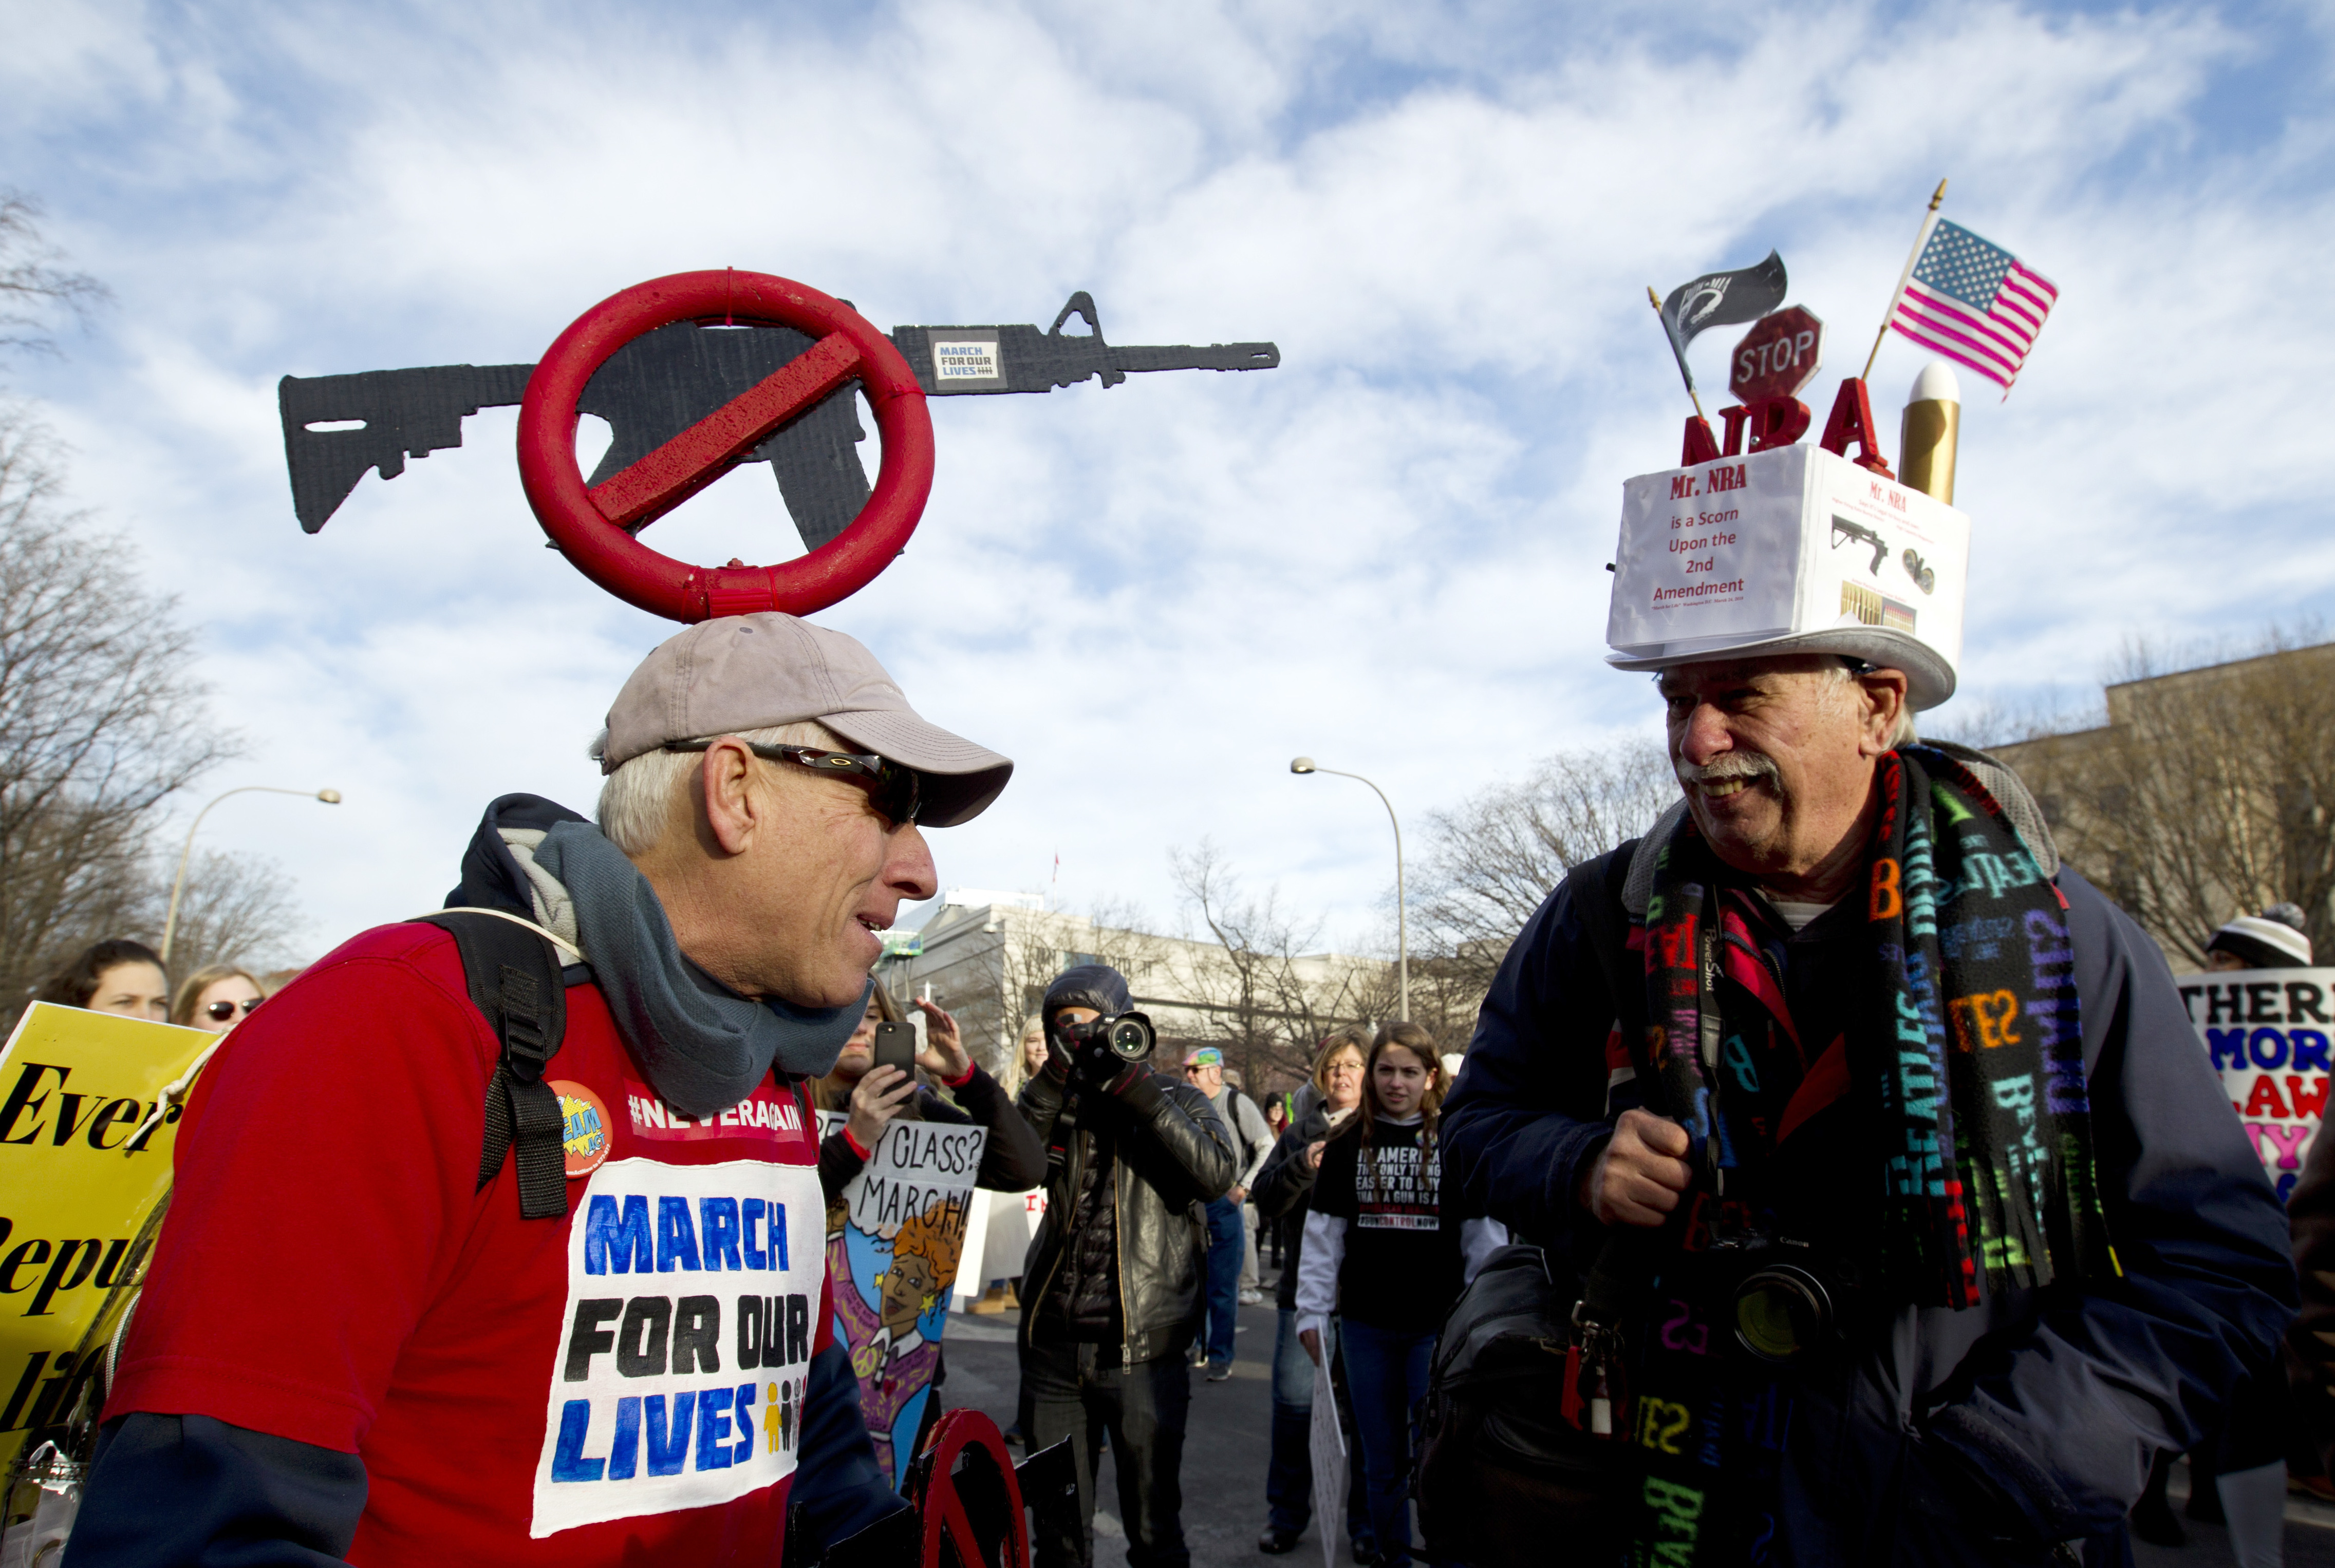 <div class='meta'><div class='origin-logo' data-origin='AP'></div><span class='caption-text' data-credit='AP Photo/Jose Luis Magana'>Steven Rothman, left, and Dan Knorowski attend the &#34;March for Our Lives&#34; rally in support of gun control in Washington, Saturday, March 24, 2018.</span></div>